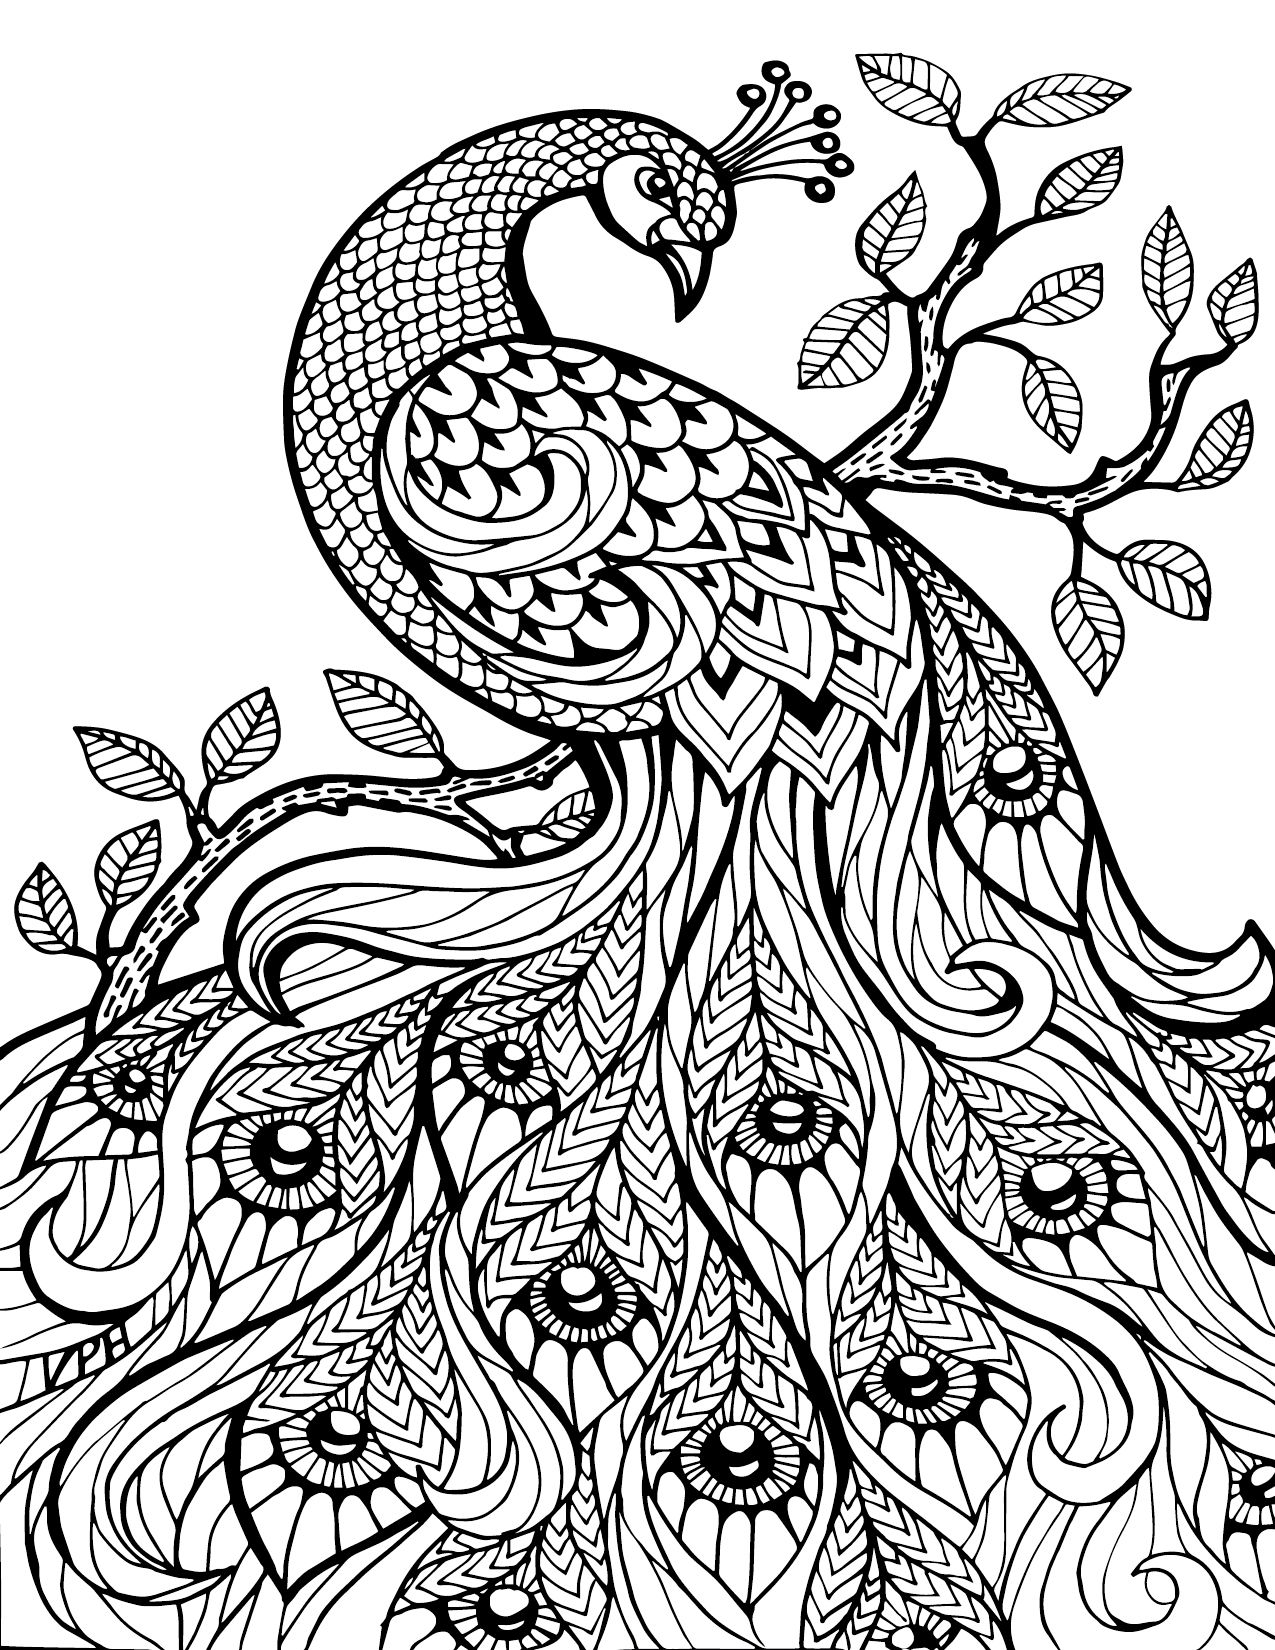 Free Printable Coloring Pages For